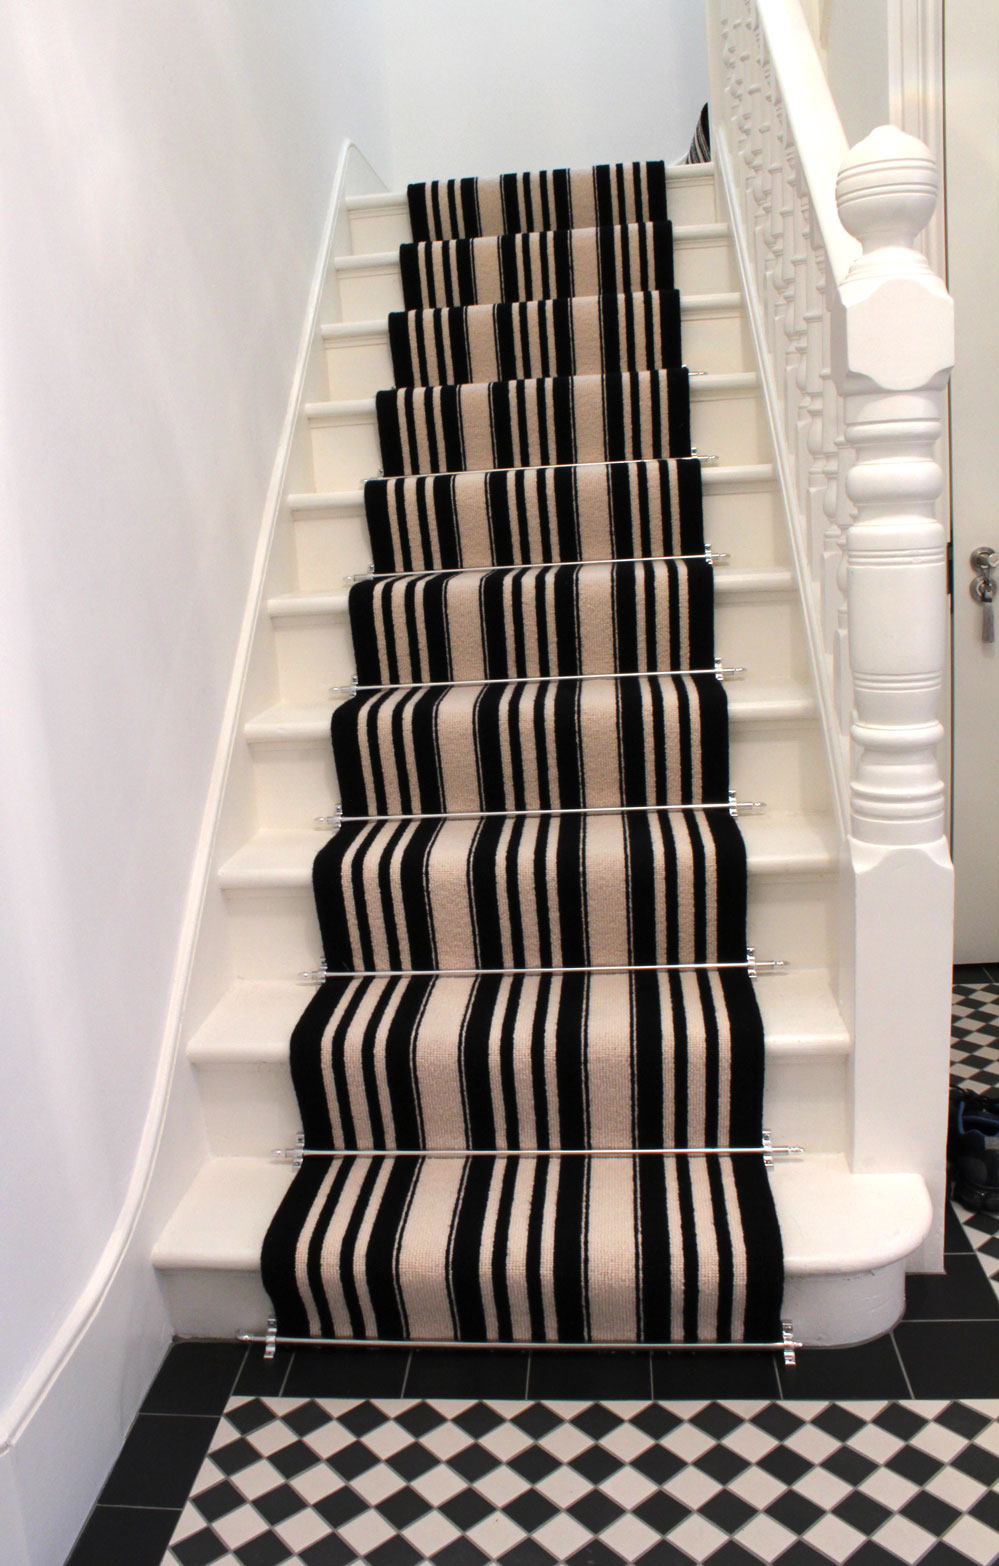 Very striped carpet pictures opinion you